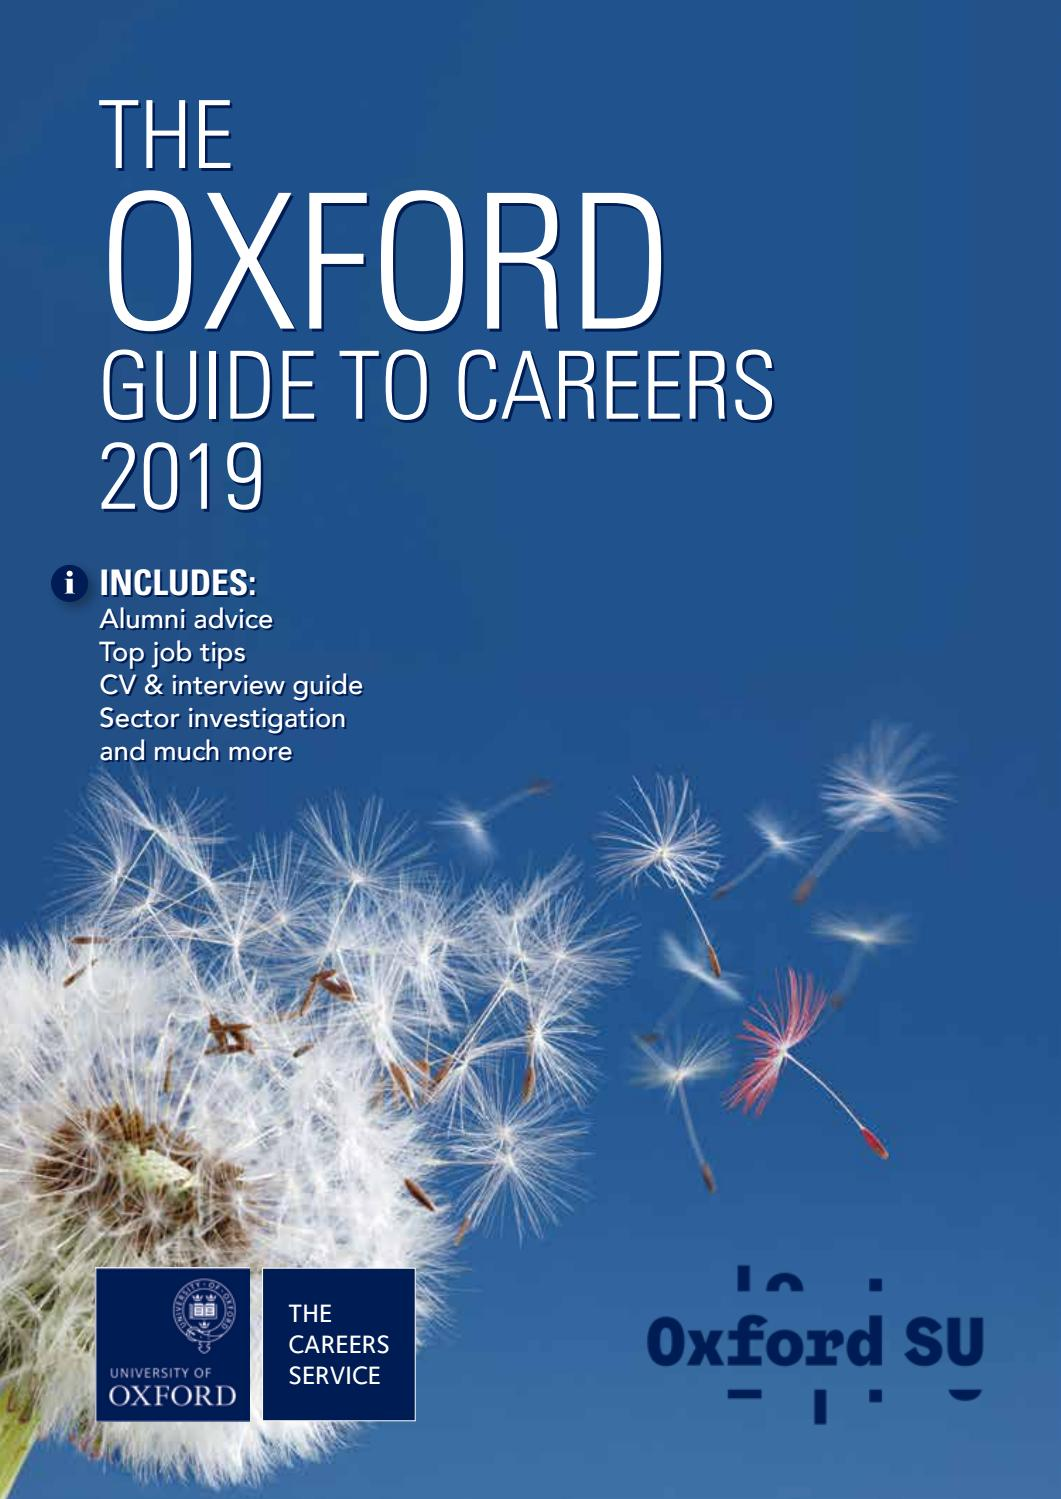 The Oxford Guide to Careers 2019 by Oxford University Careers